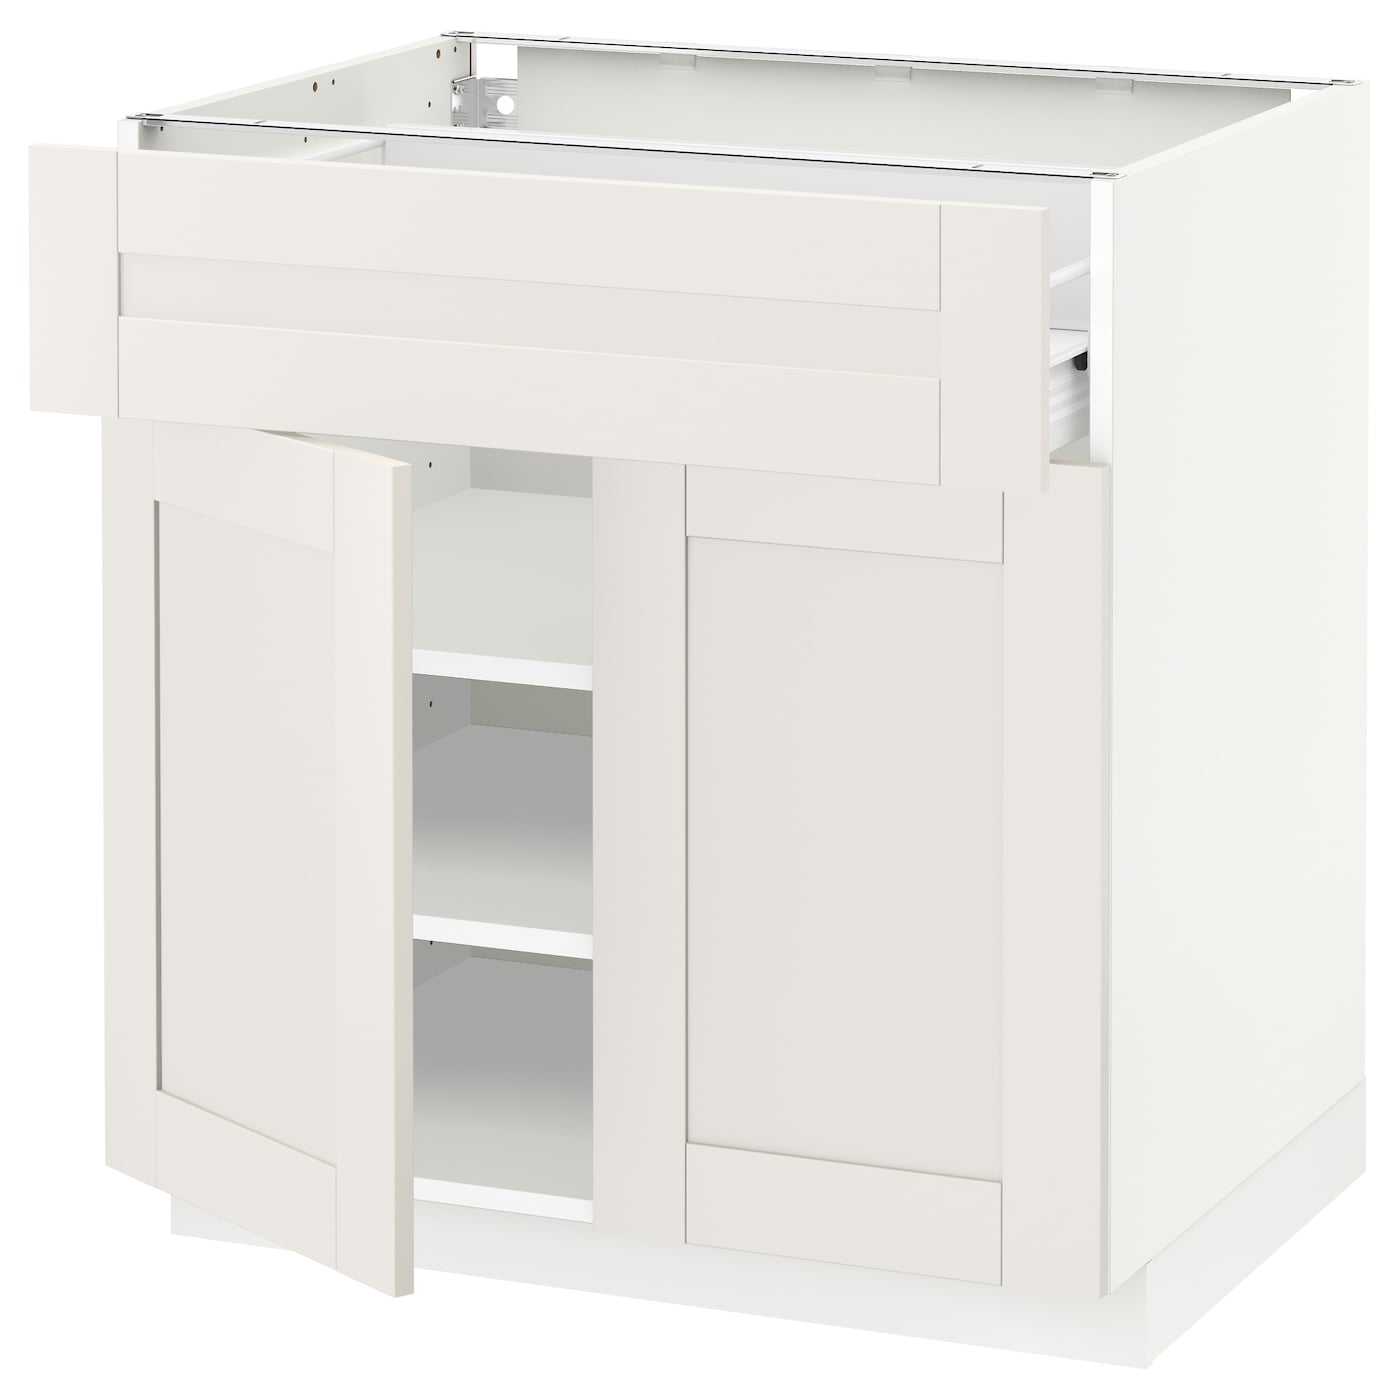 IKEA METOD/FÖRVARA base cabinet with drawer/2 doors Sturdy frame construction, 18 mm thick.